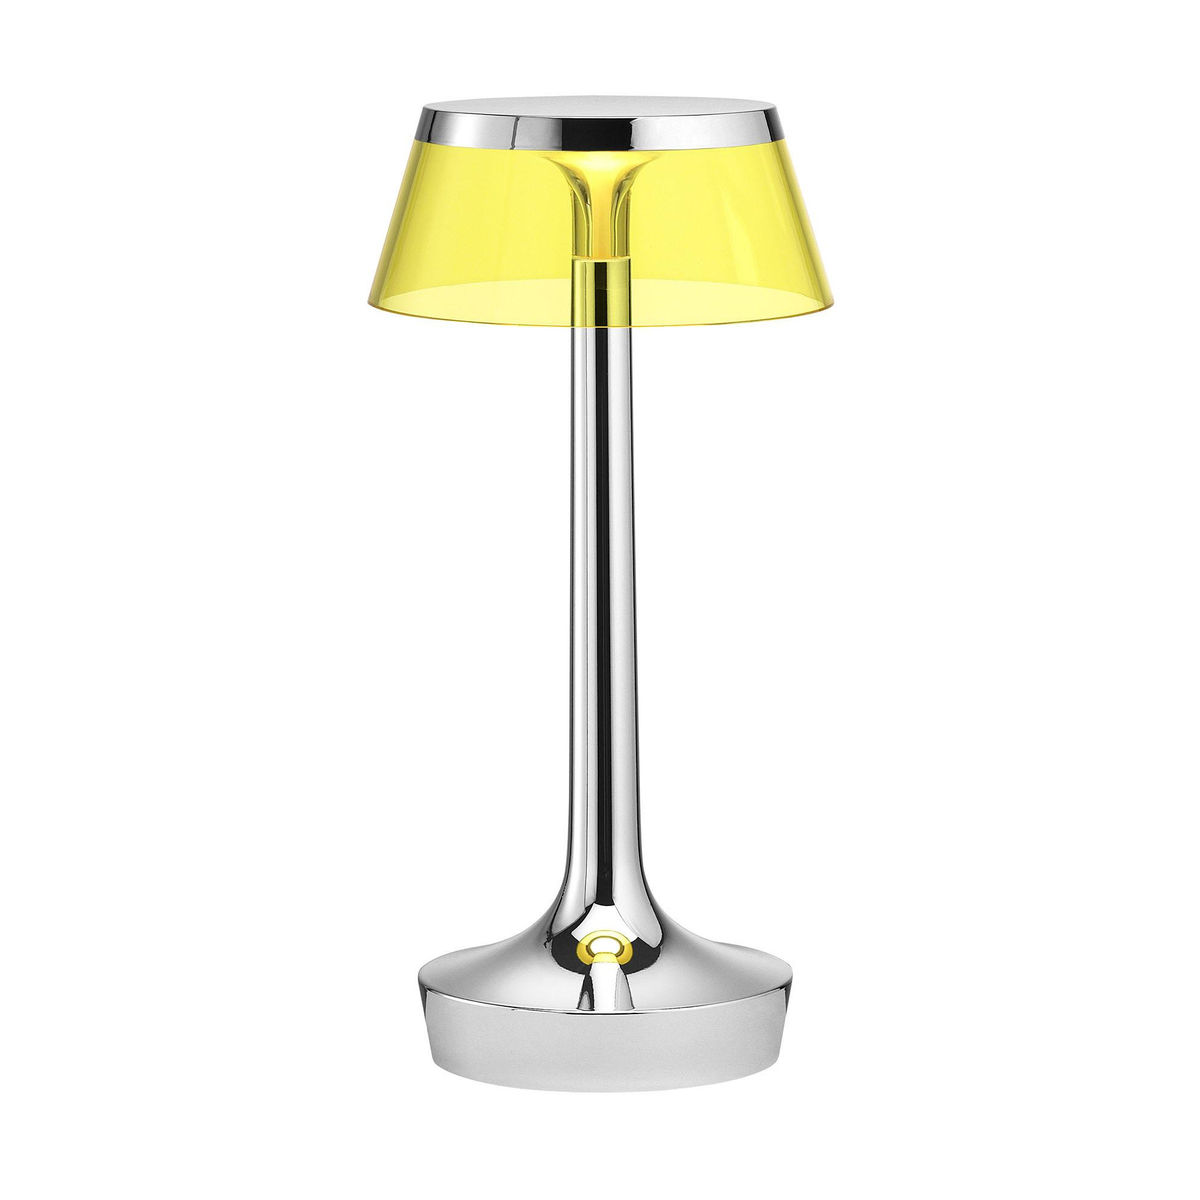 Bad Led Lampe Flos Lampe Bad